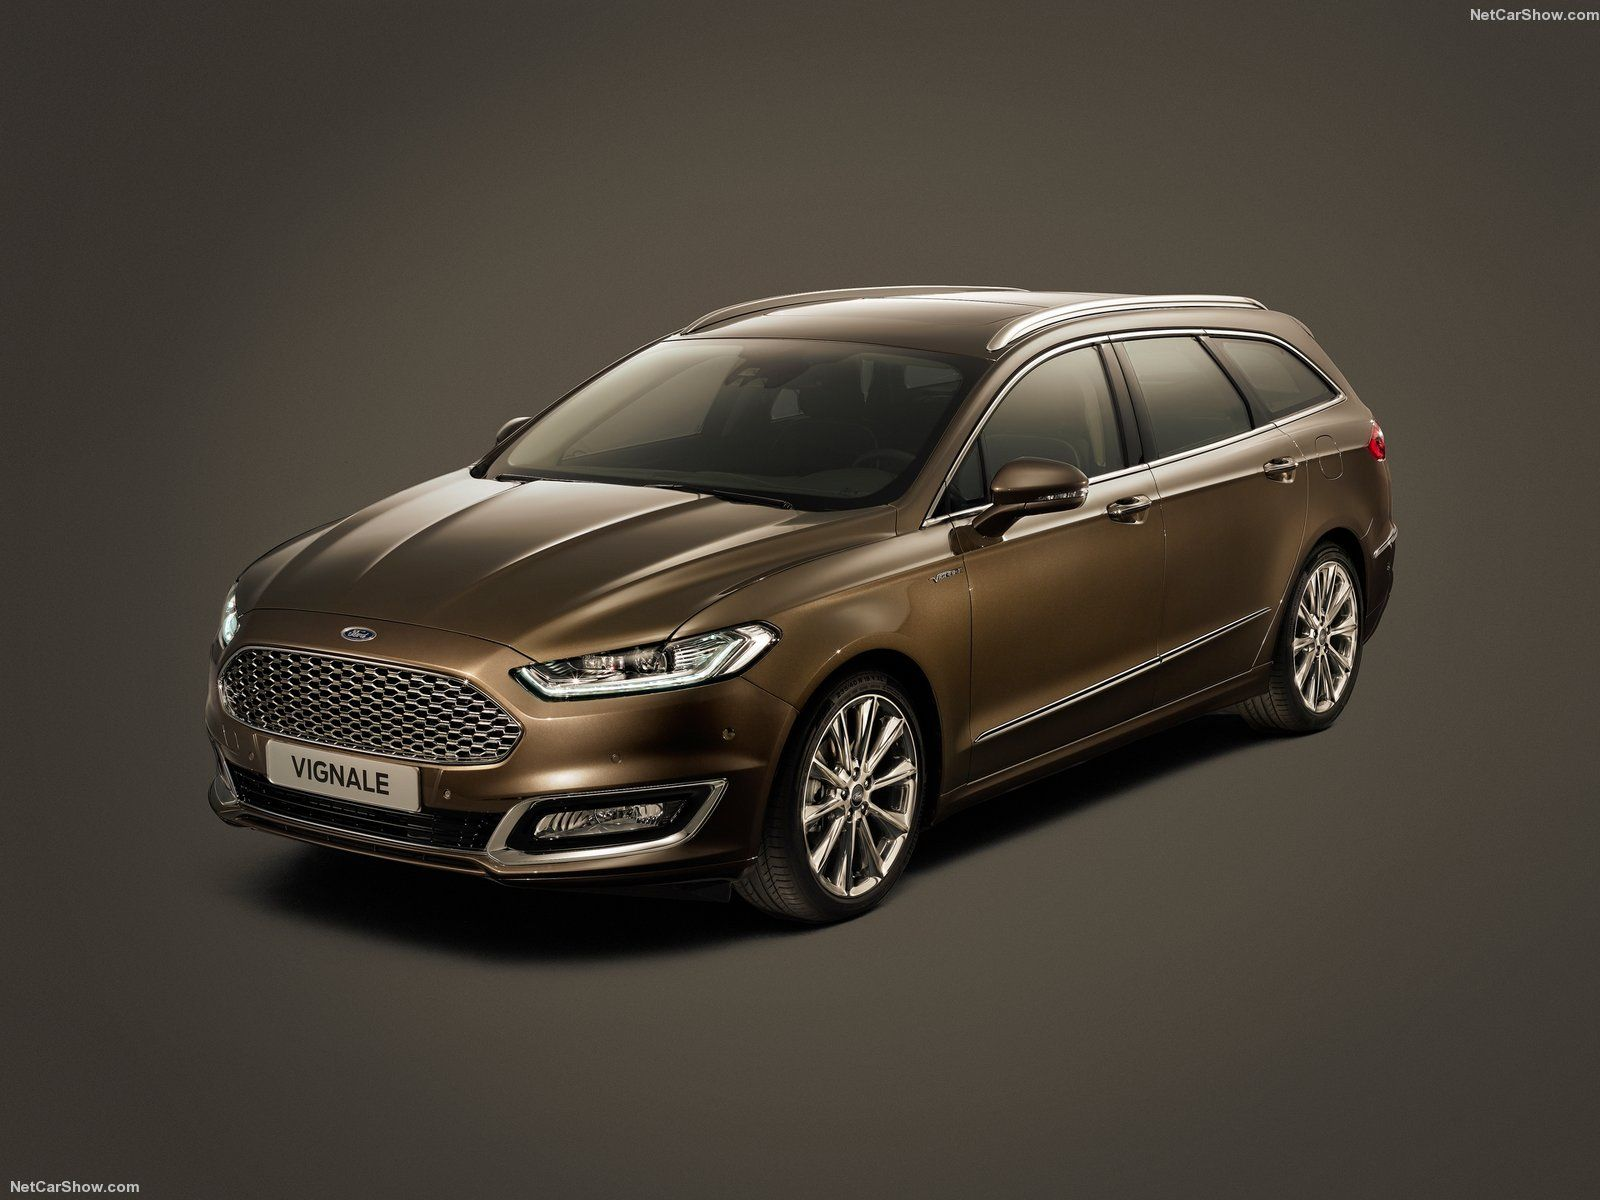 2016 Ford Mondeo Vignale Cars Ford Mondeo Ford Luxury Cars